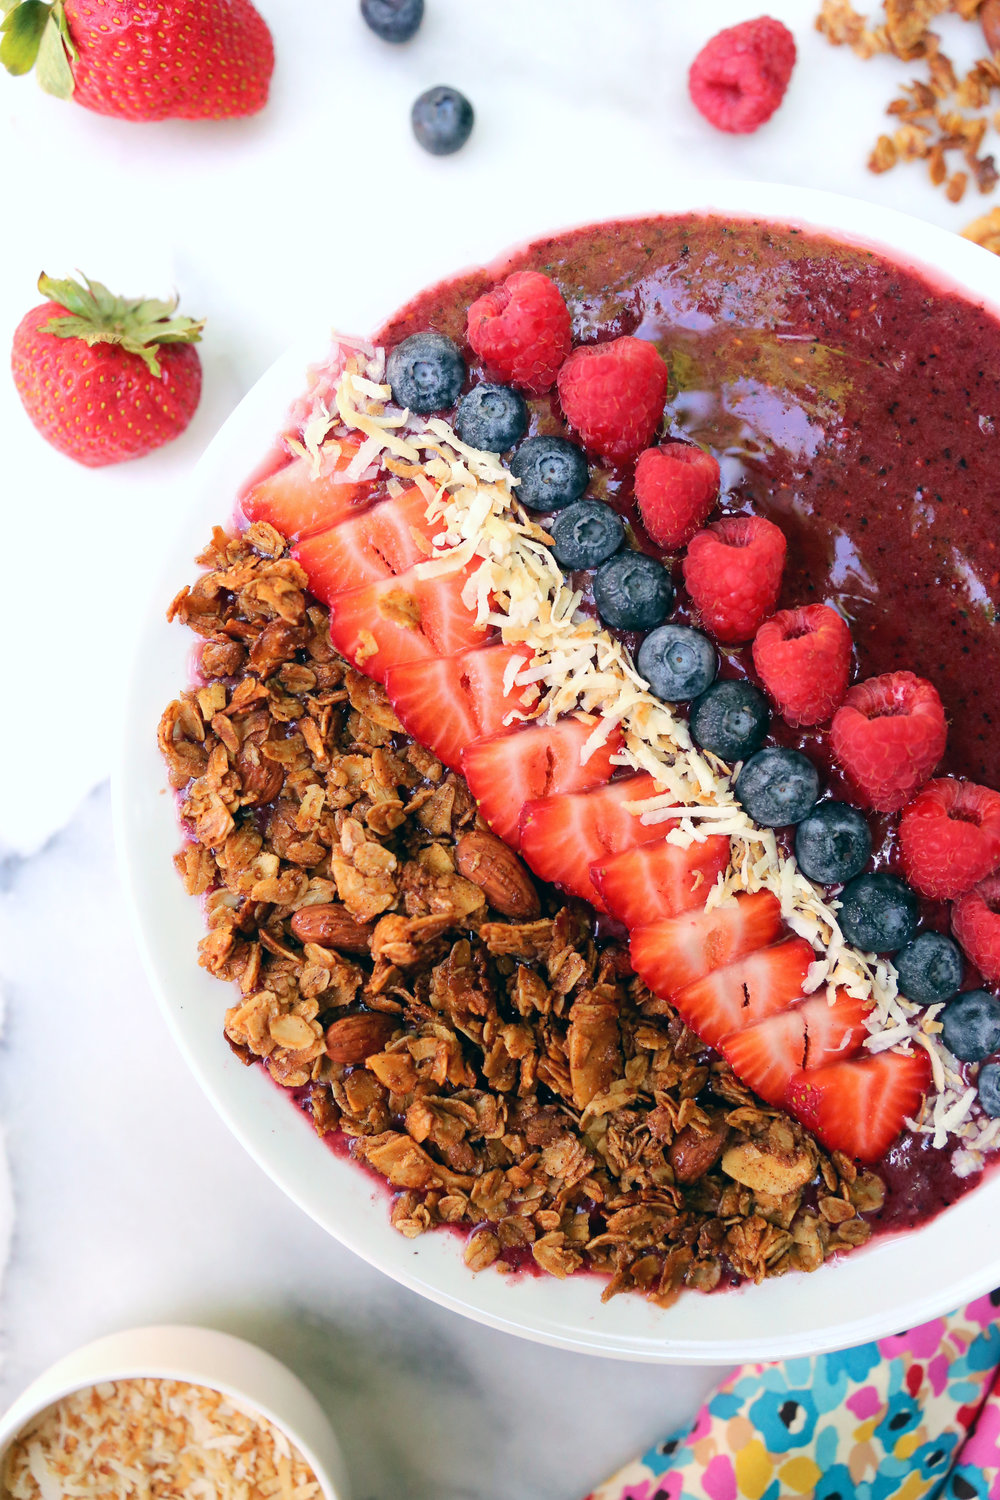 A berry smoothie bowl topped with fresh fruit, toasted coconut, and granola. Unusuallylovely.com